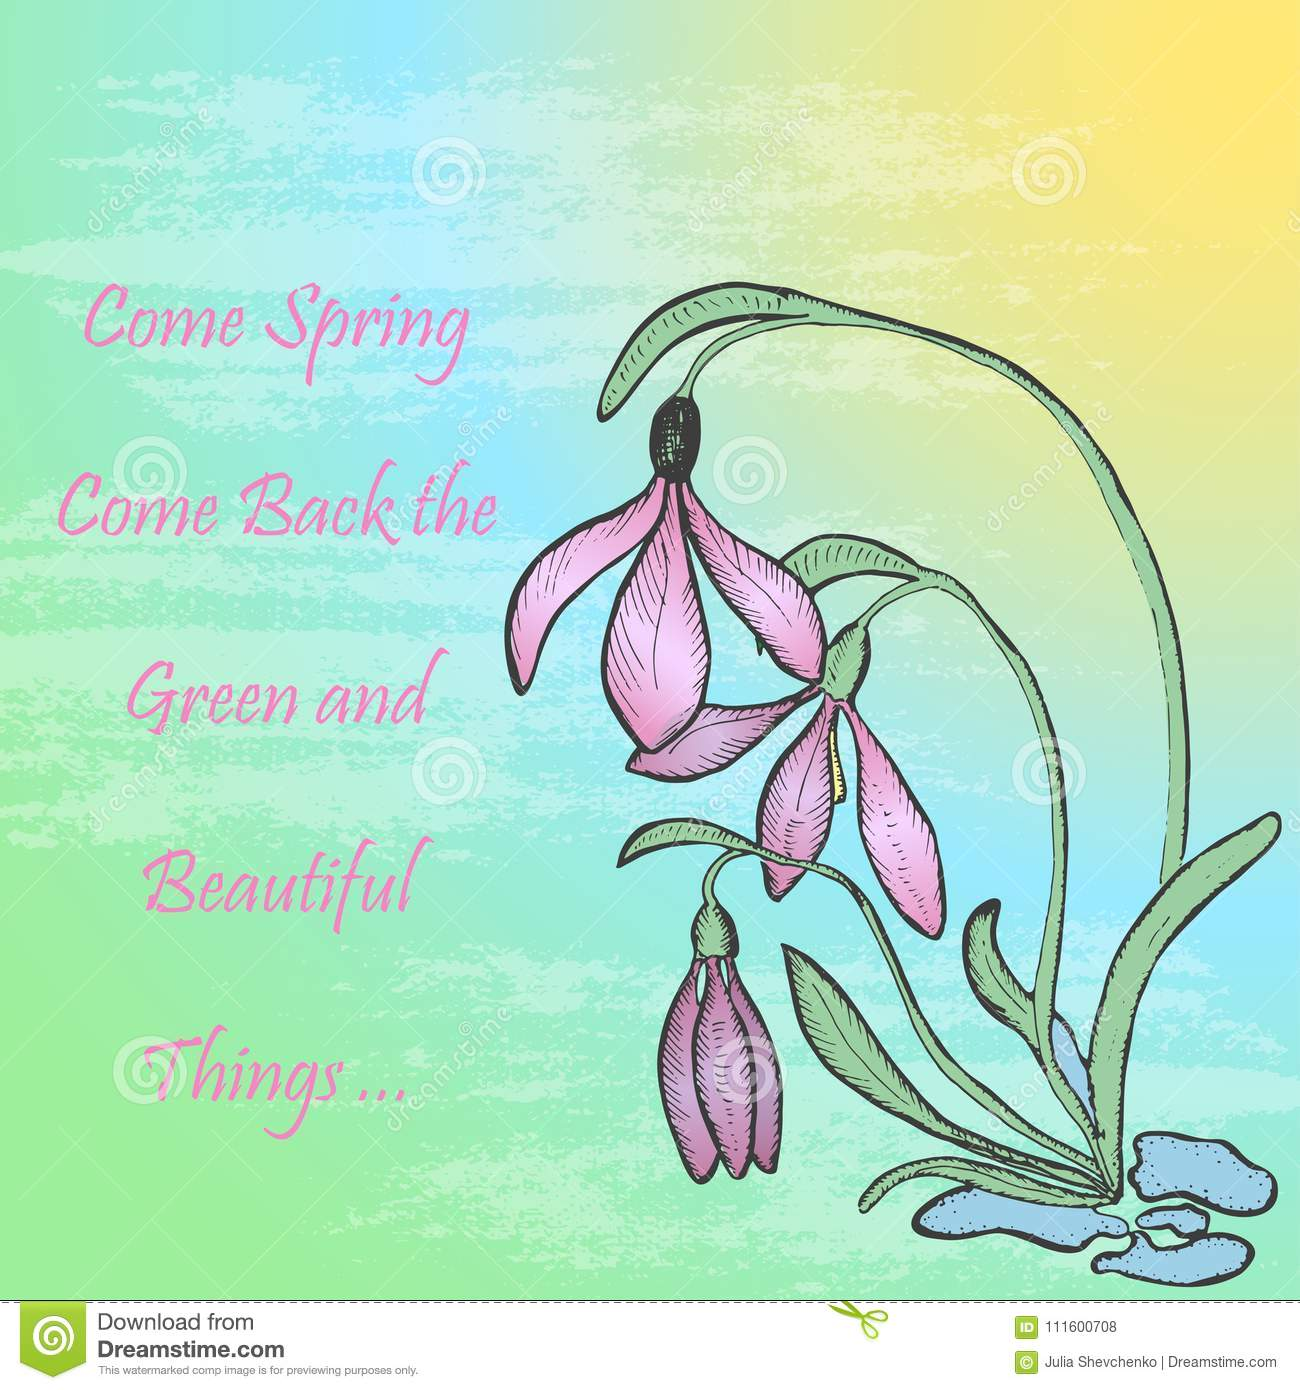 Spring theme card with snowdrop stock vector illustration of spring theme greeting card with snowdrop bush on the background with gradient and brush texture text with words about spring vector eps 10 izmirmasajfo